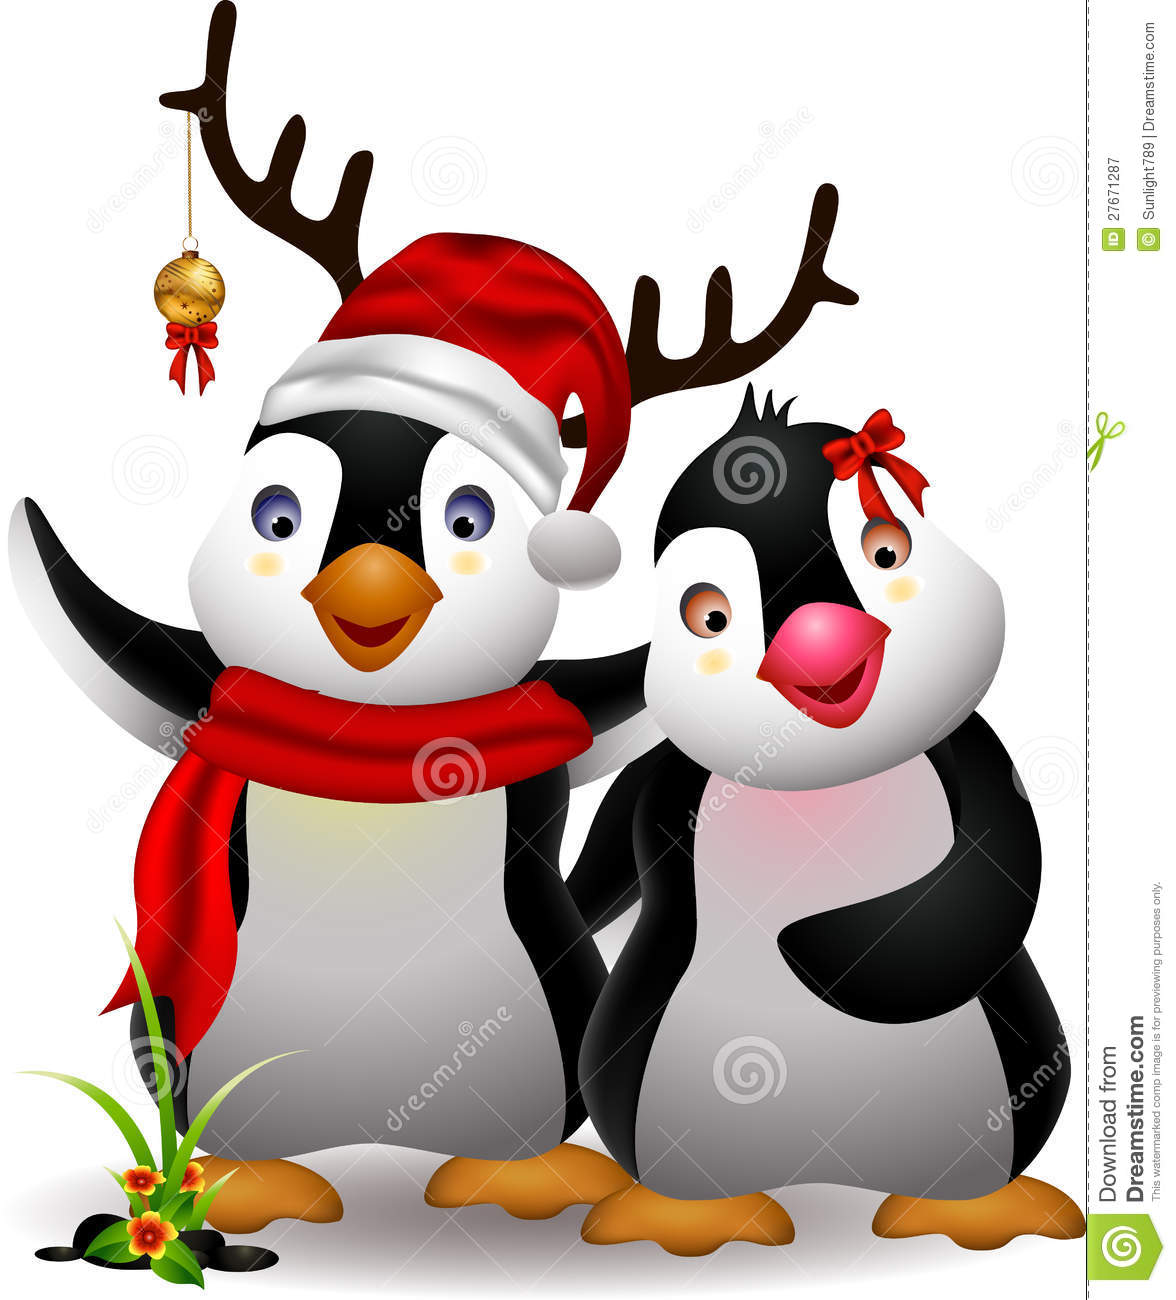 Cute Penguin Christmas Cartoon Couple With Love Illustration 1176x1300